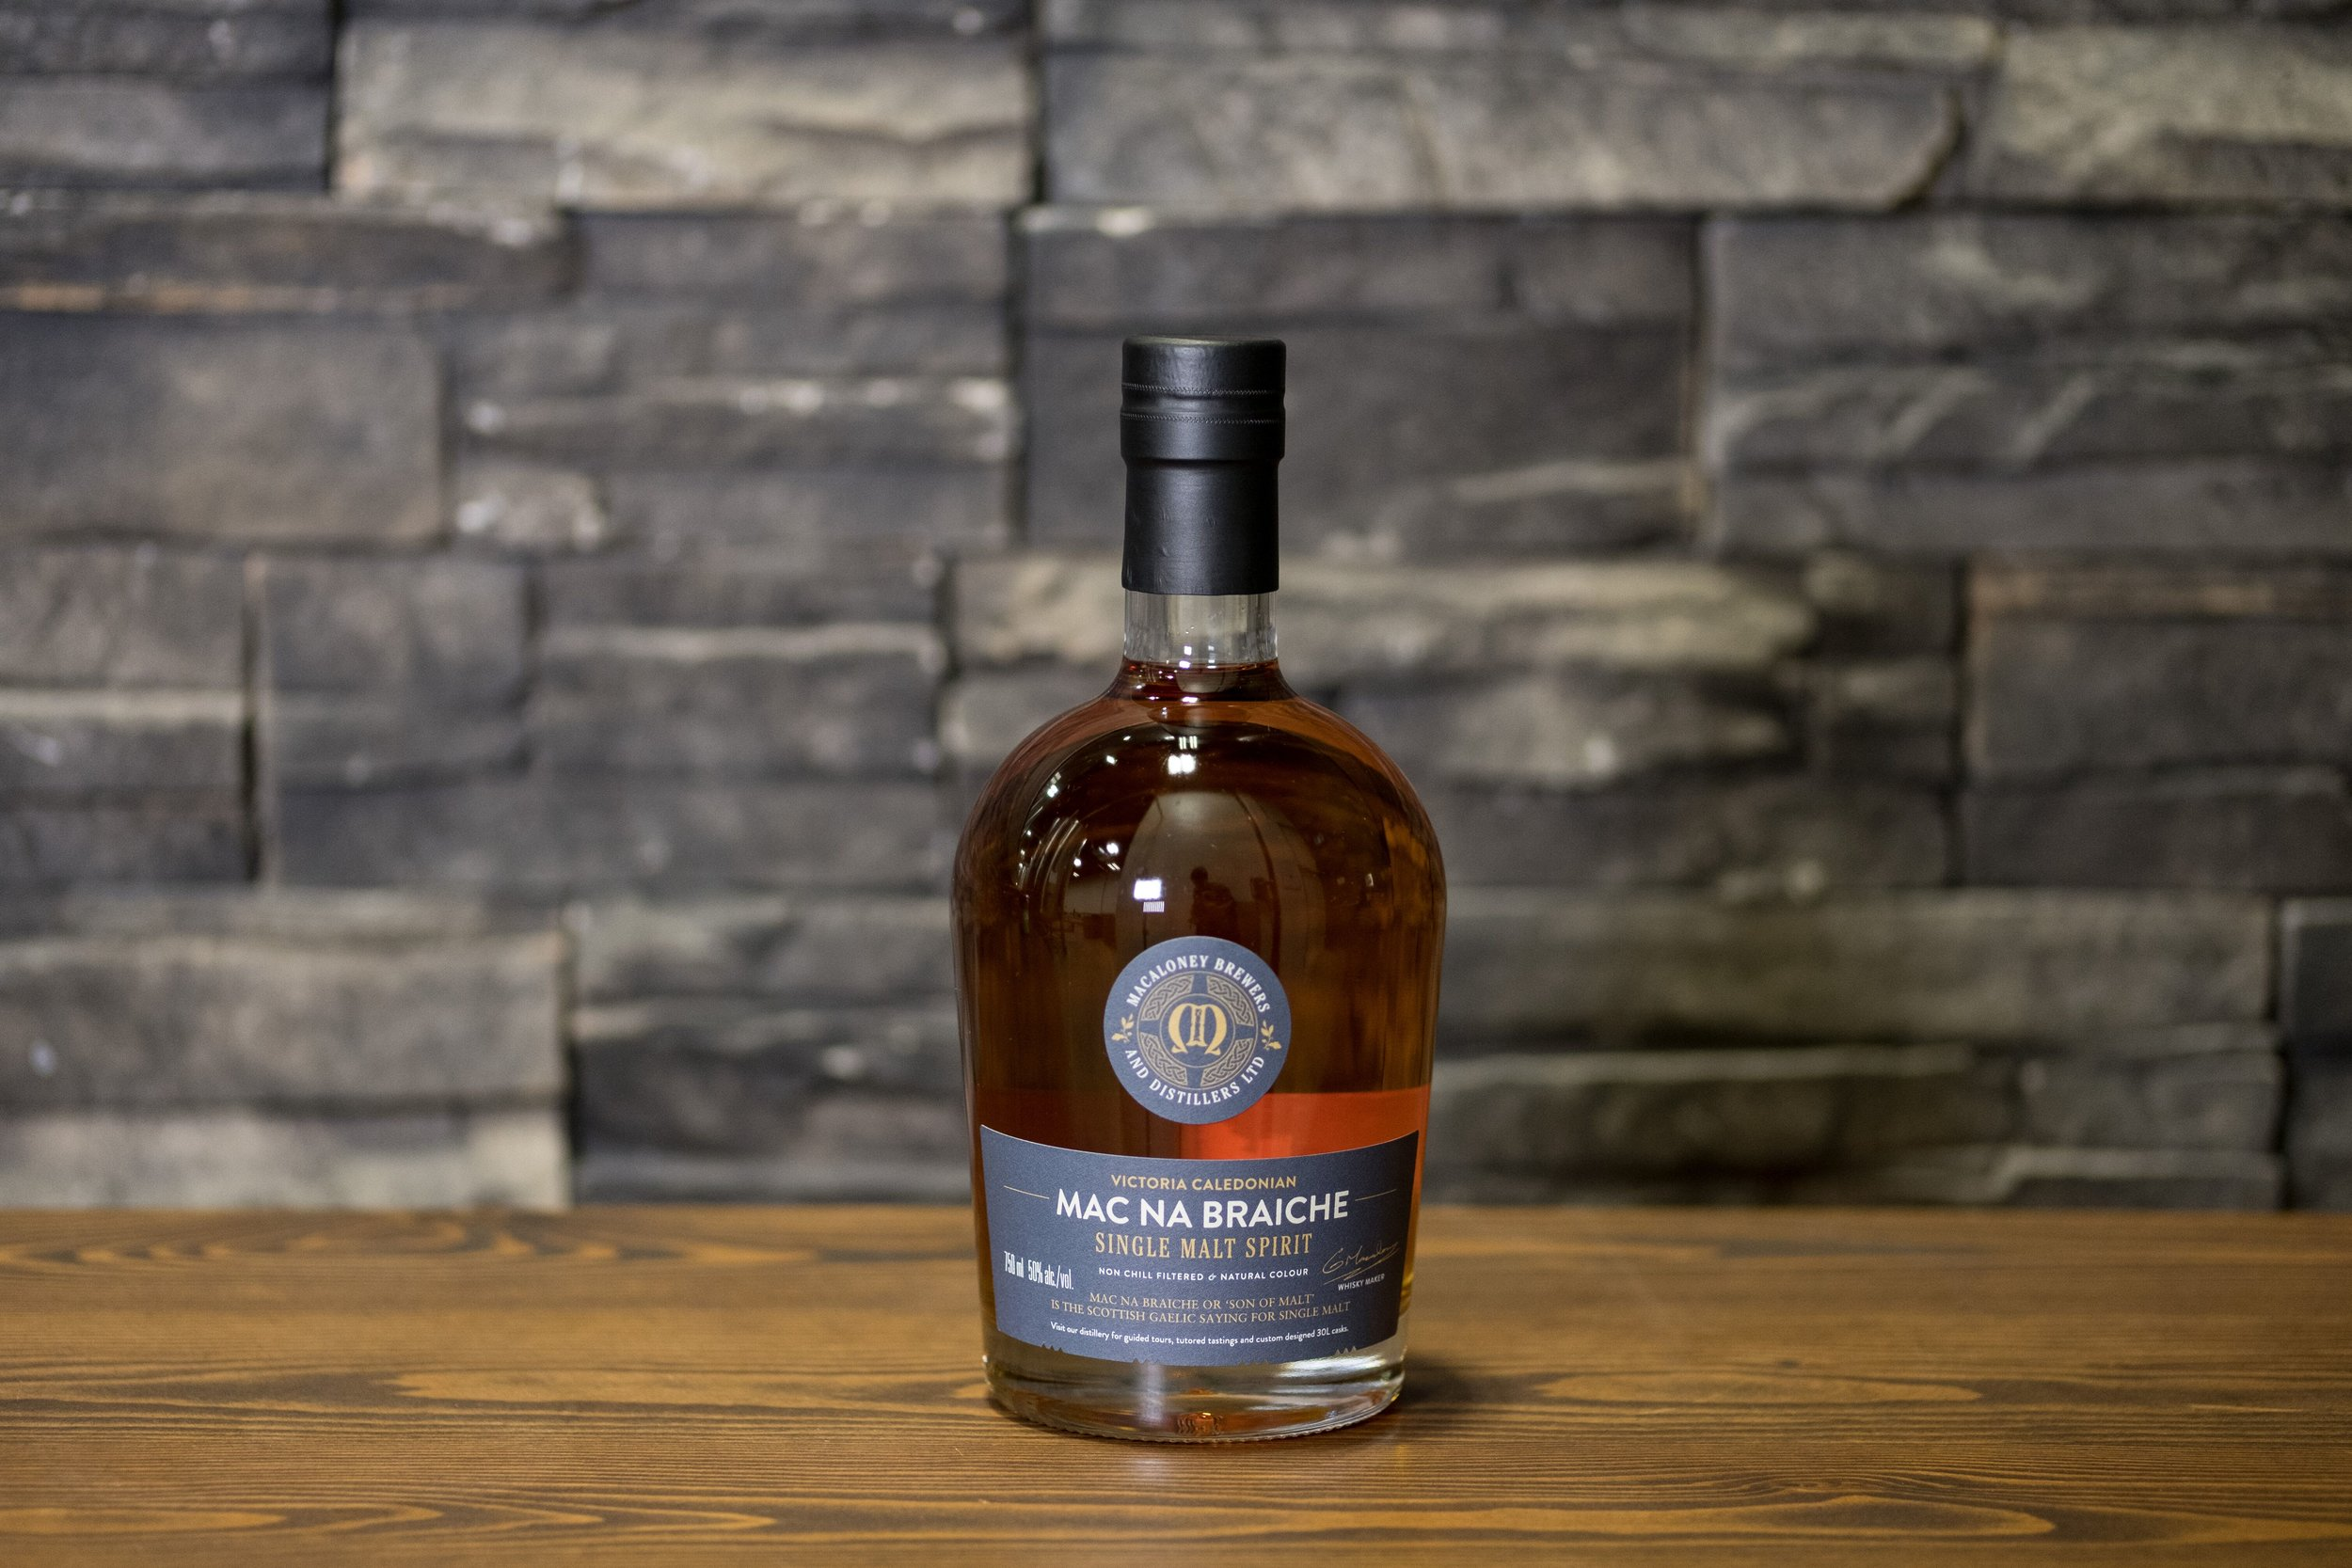 Image courtesy of  Victoria Caledonian Distillery .